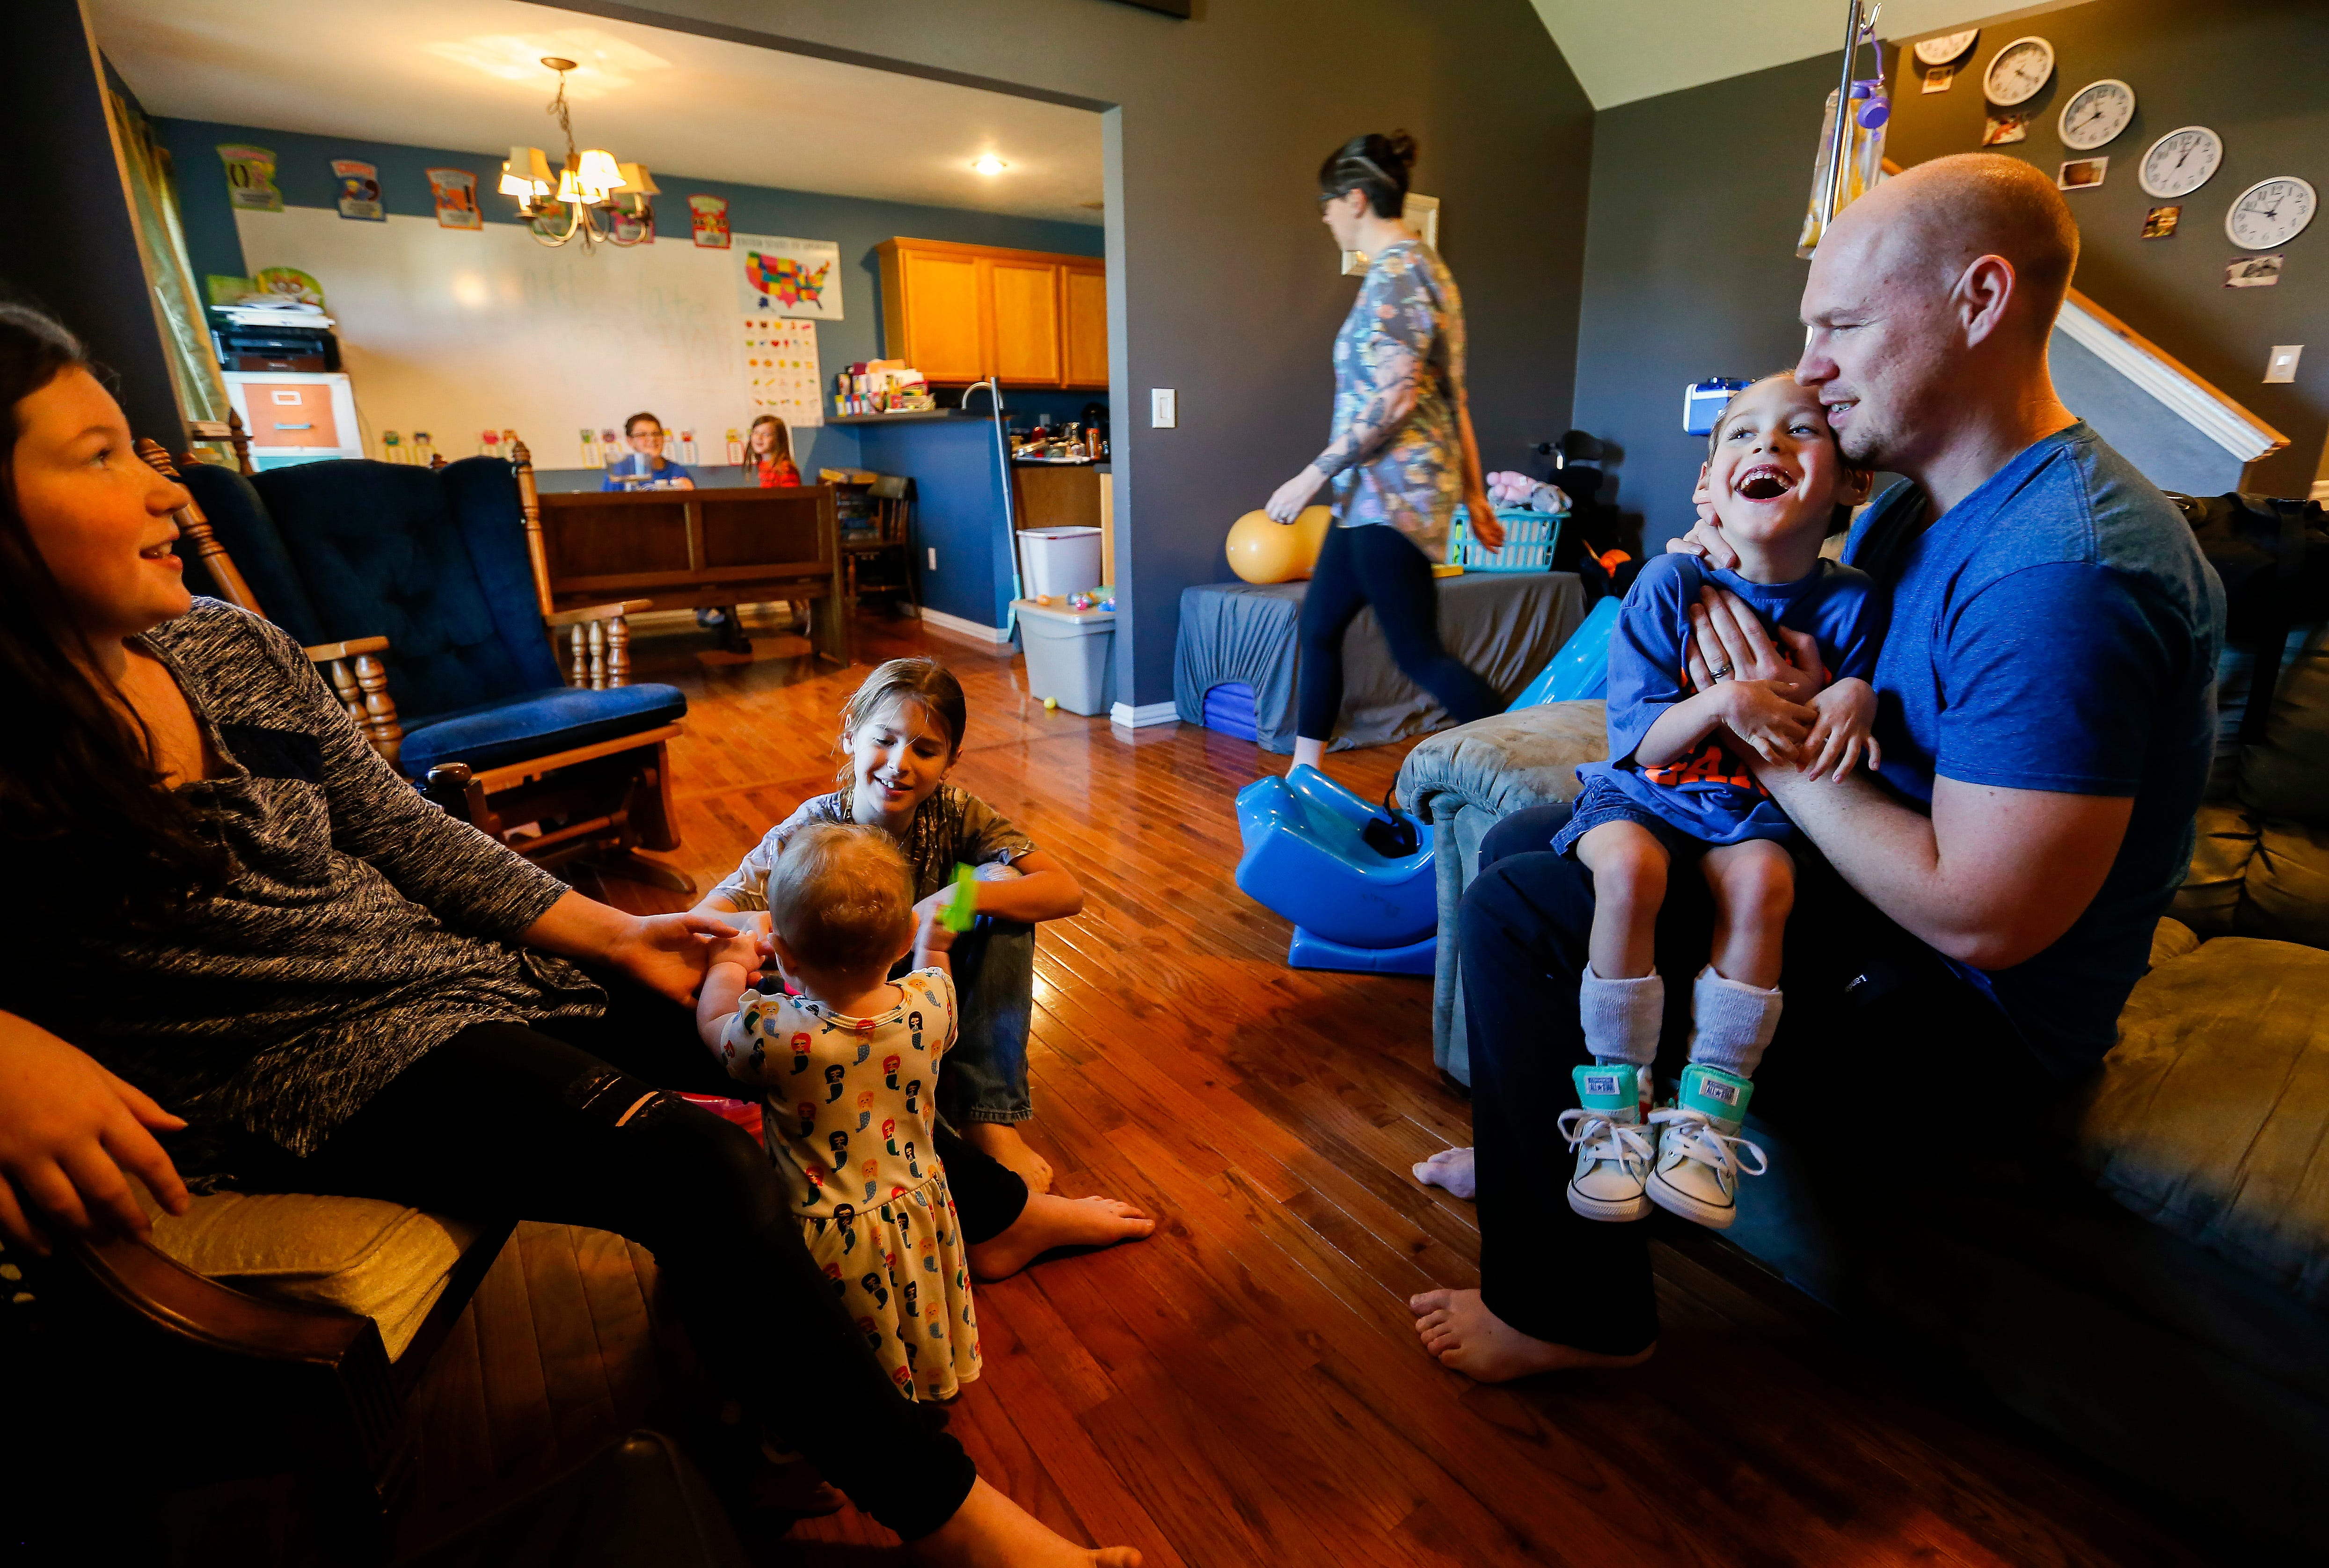 Ayden Marum laughs as he sits on his dad Chris Markum's lap while talking to, from right, Eliza, 11, Letty, 7-months, and Asa, 8, in the living room of their home in Rogersville on Friday, April 27, 2018.